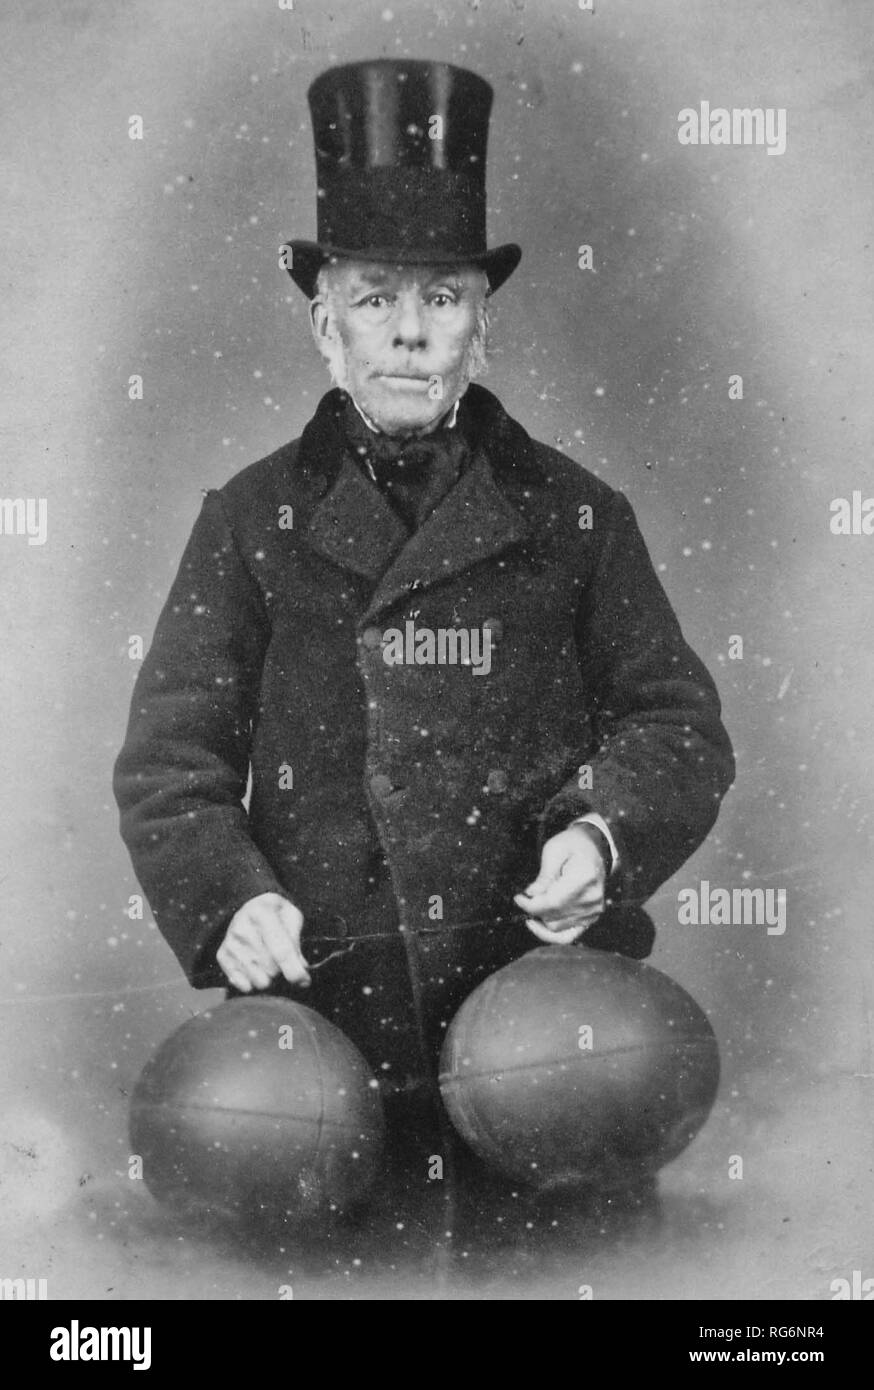 Richard Lindon, believed to have invented the first footballs with rubber bladders, holding the new 'buttonless' balls, circa 1880 - Stock Image